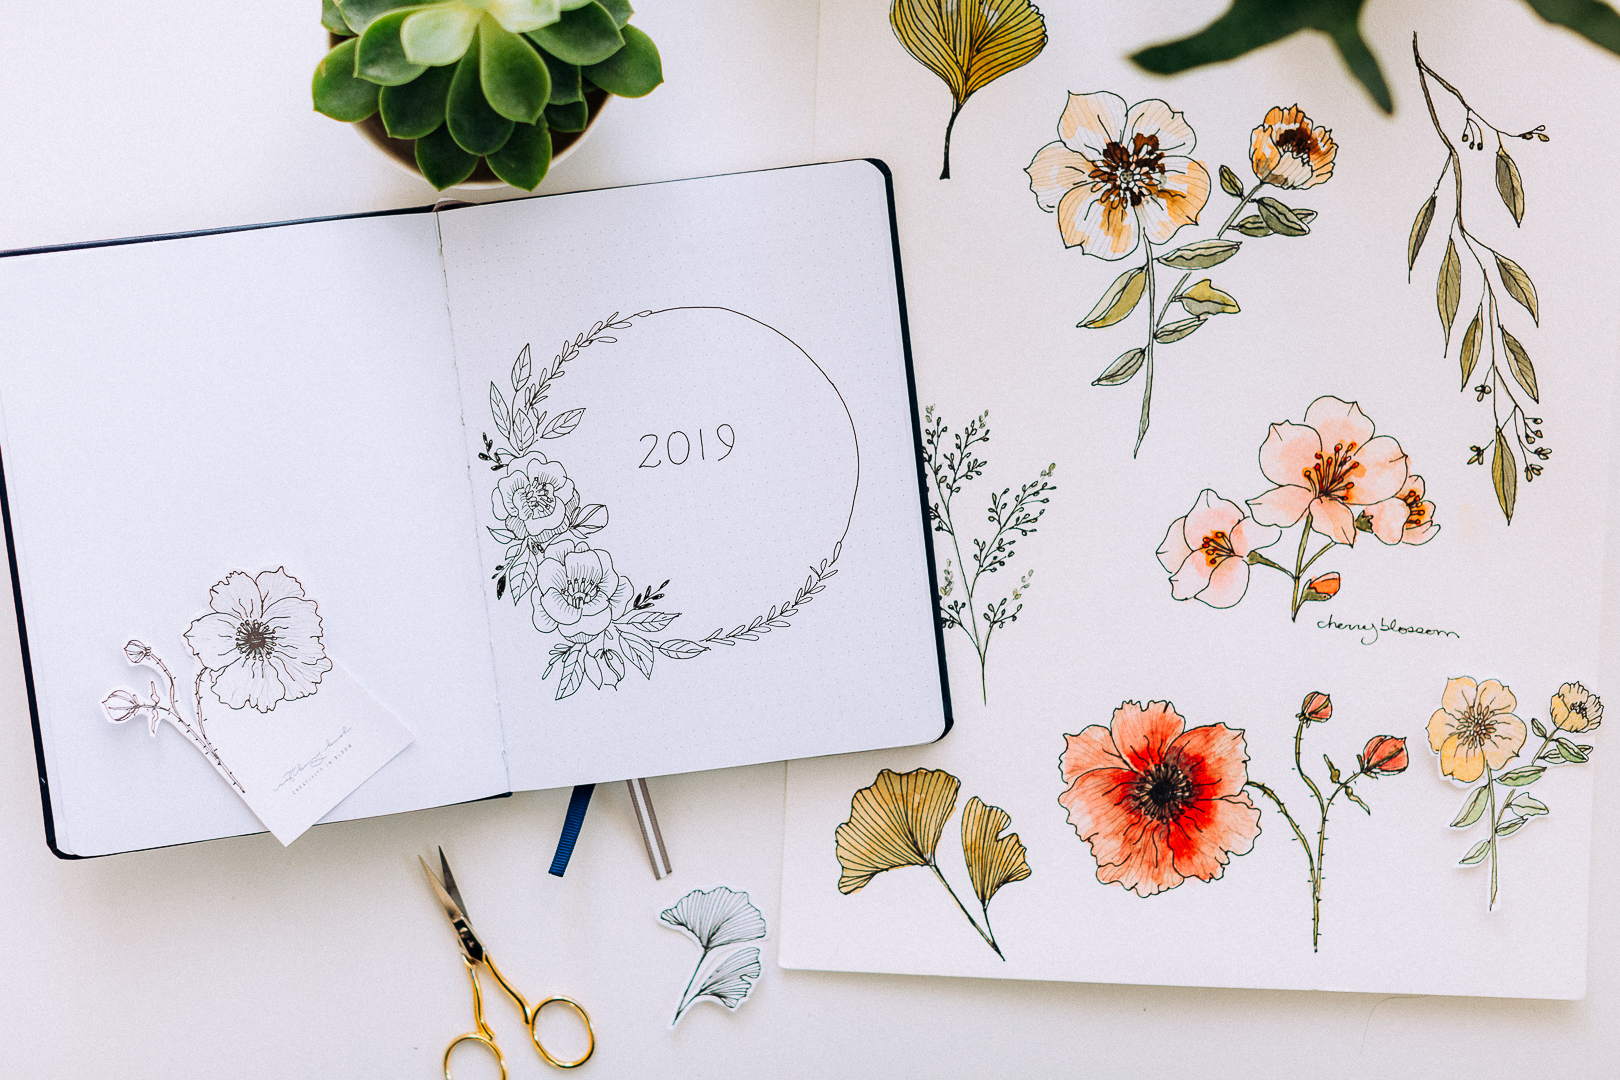 My first bullet journal, 2 free months of Skillshare Premium